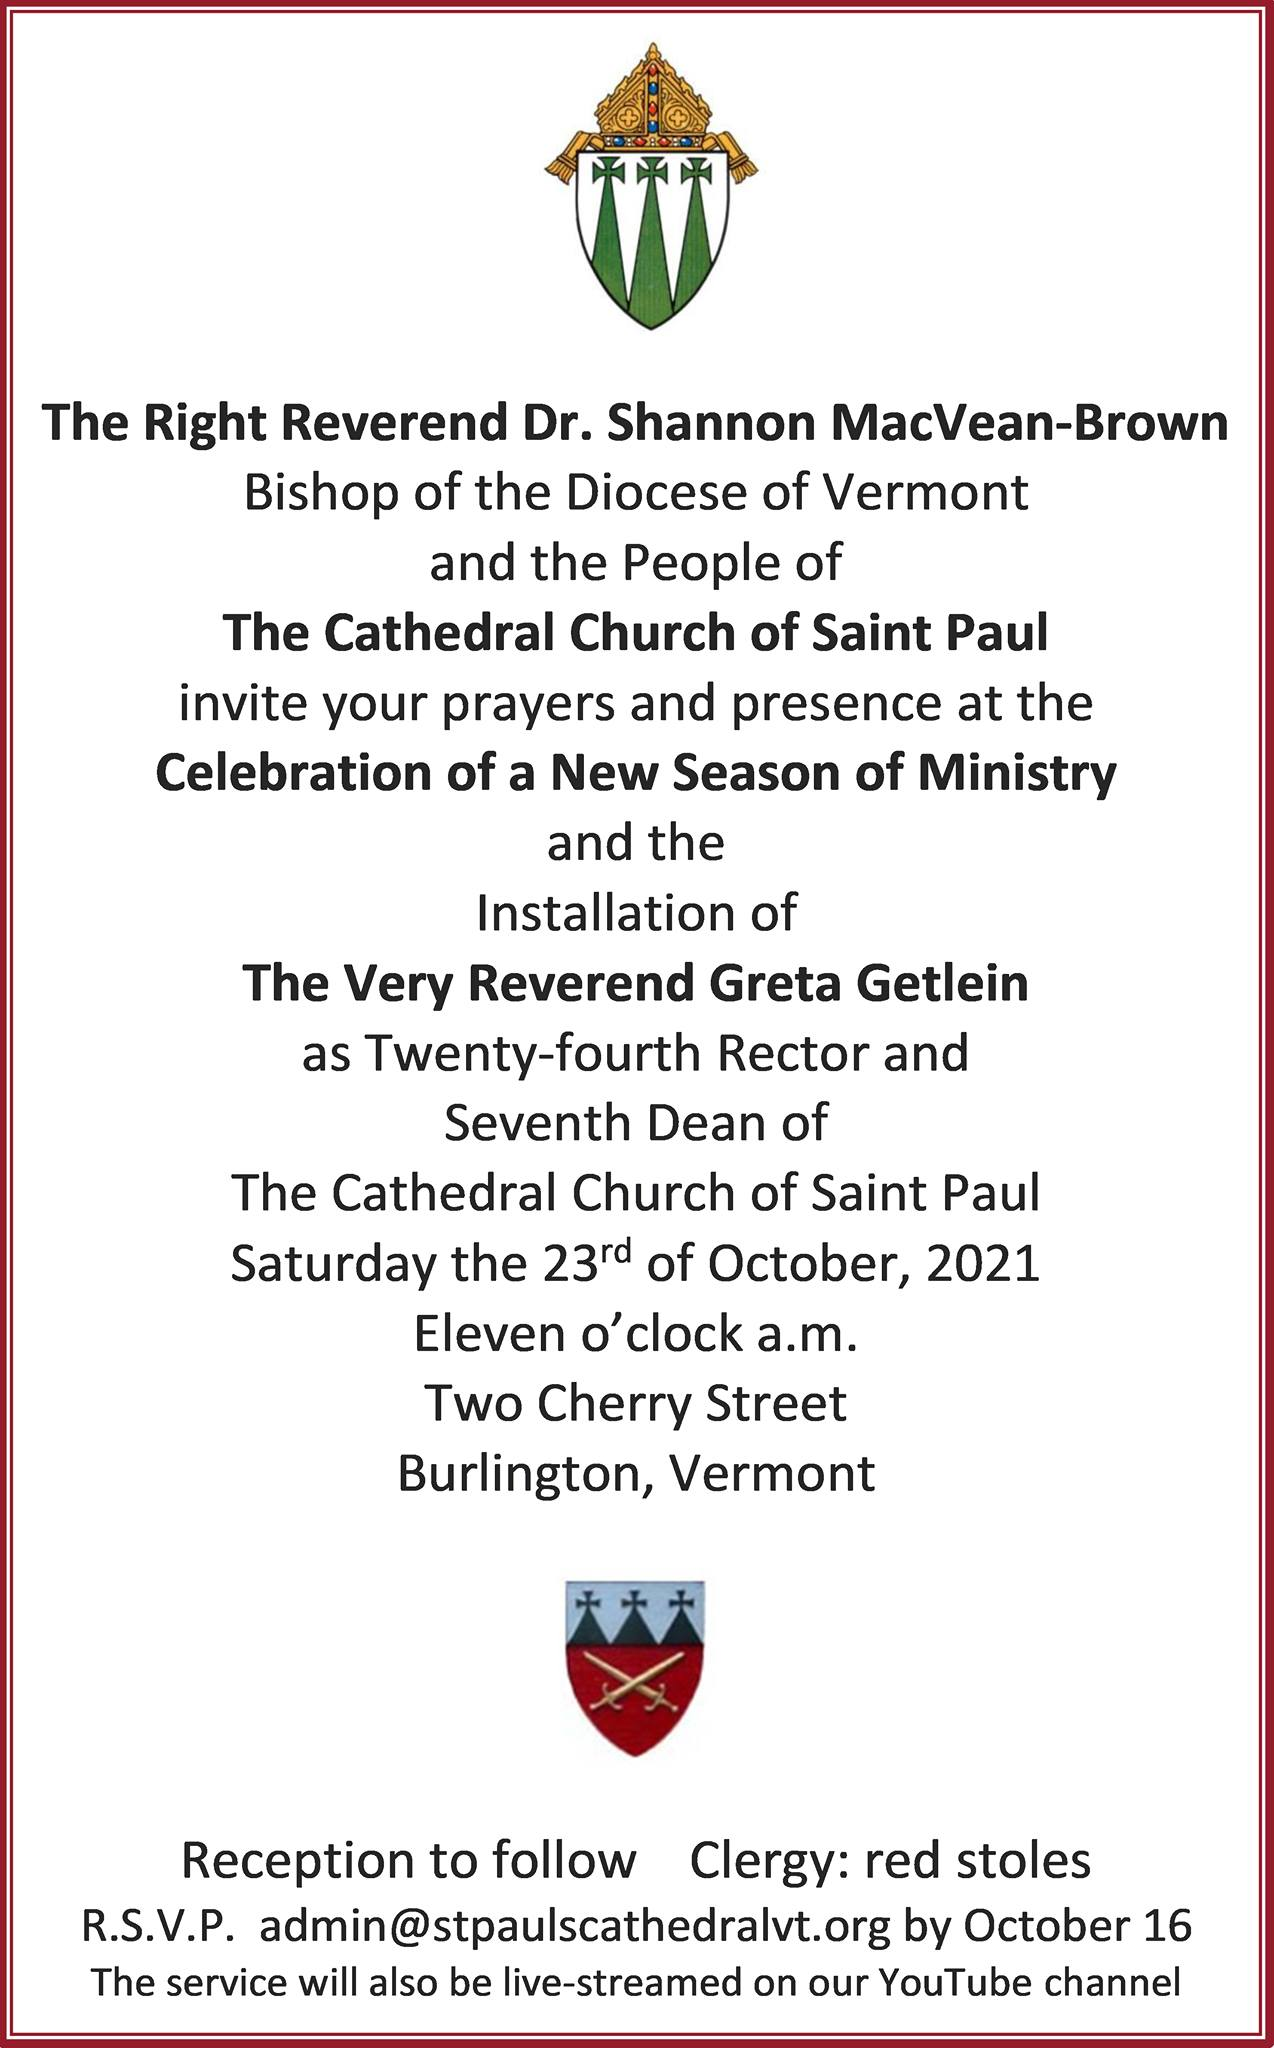 Installation of the Very Rev. Greta Getlein as Dean and Rector Cathedral Church of St. Paul